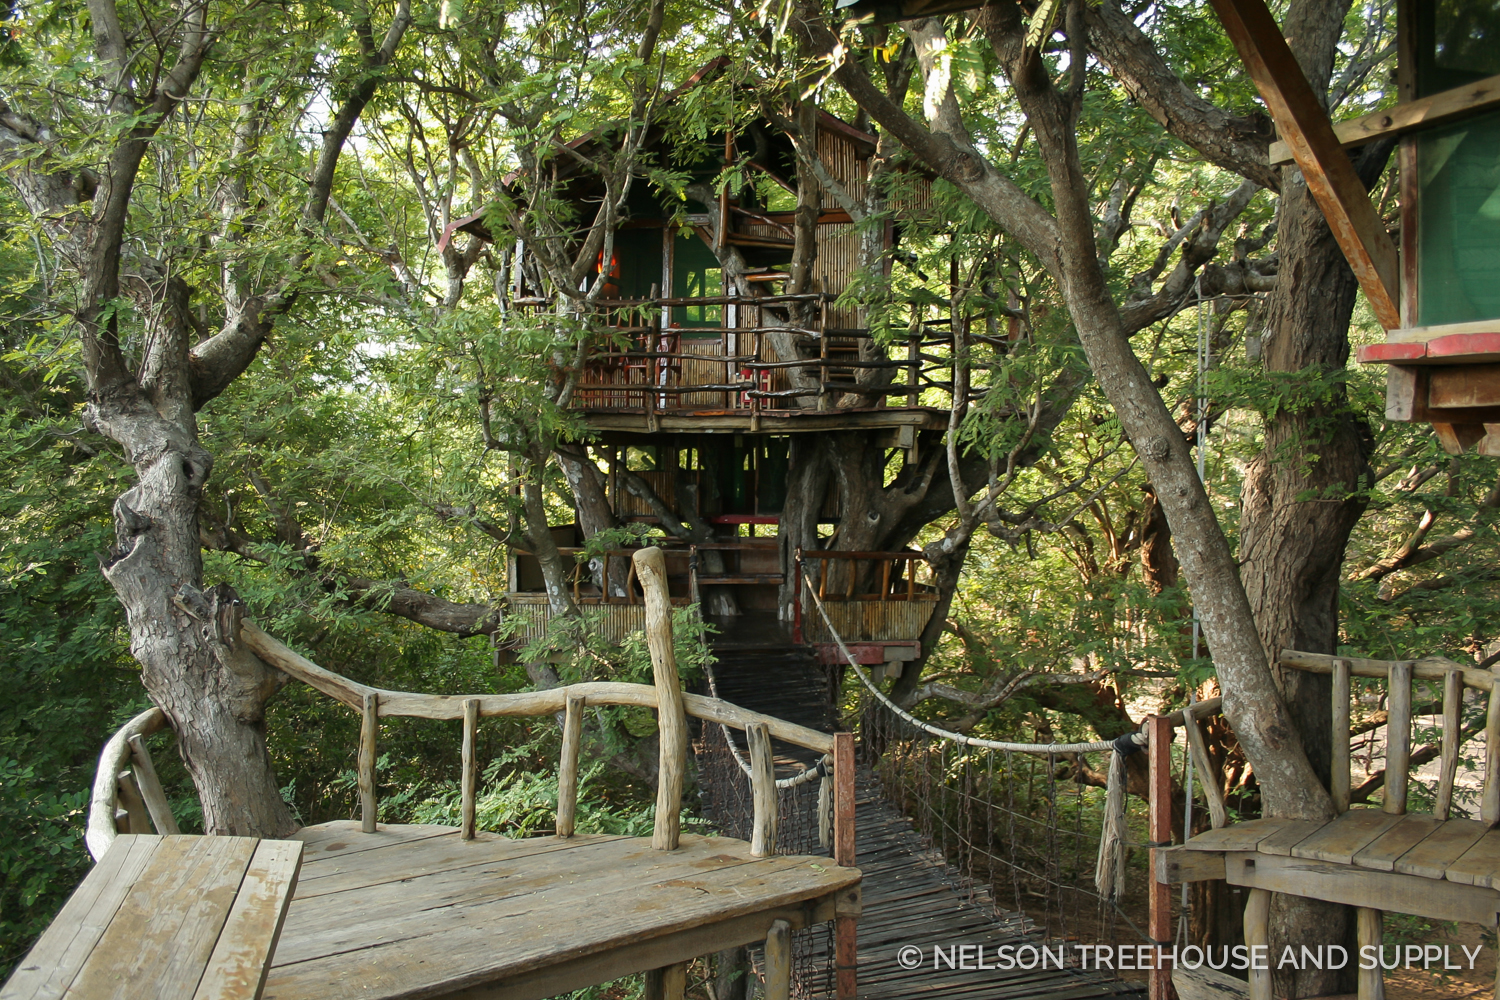 Toby's dream treehouse would have a mostly open-air design like this treehouse in China